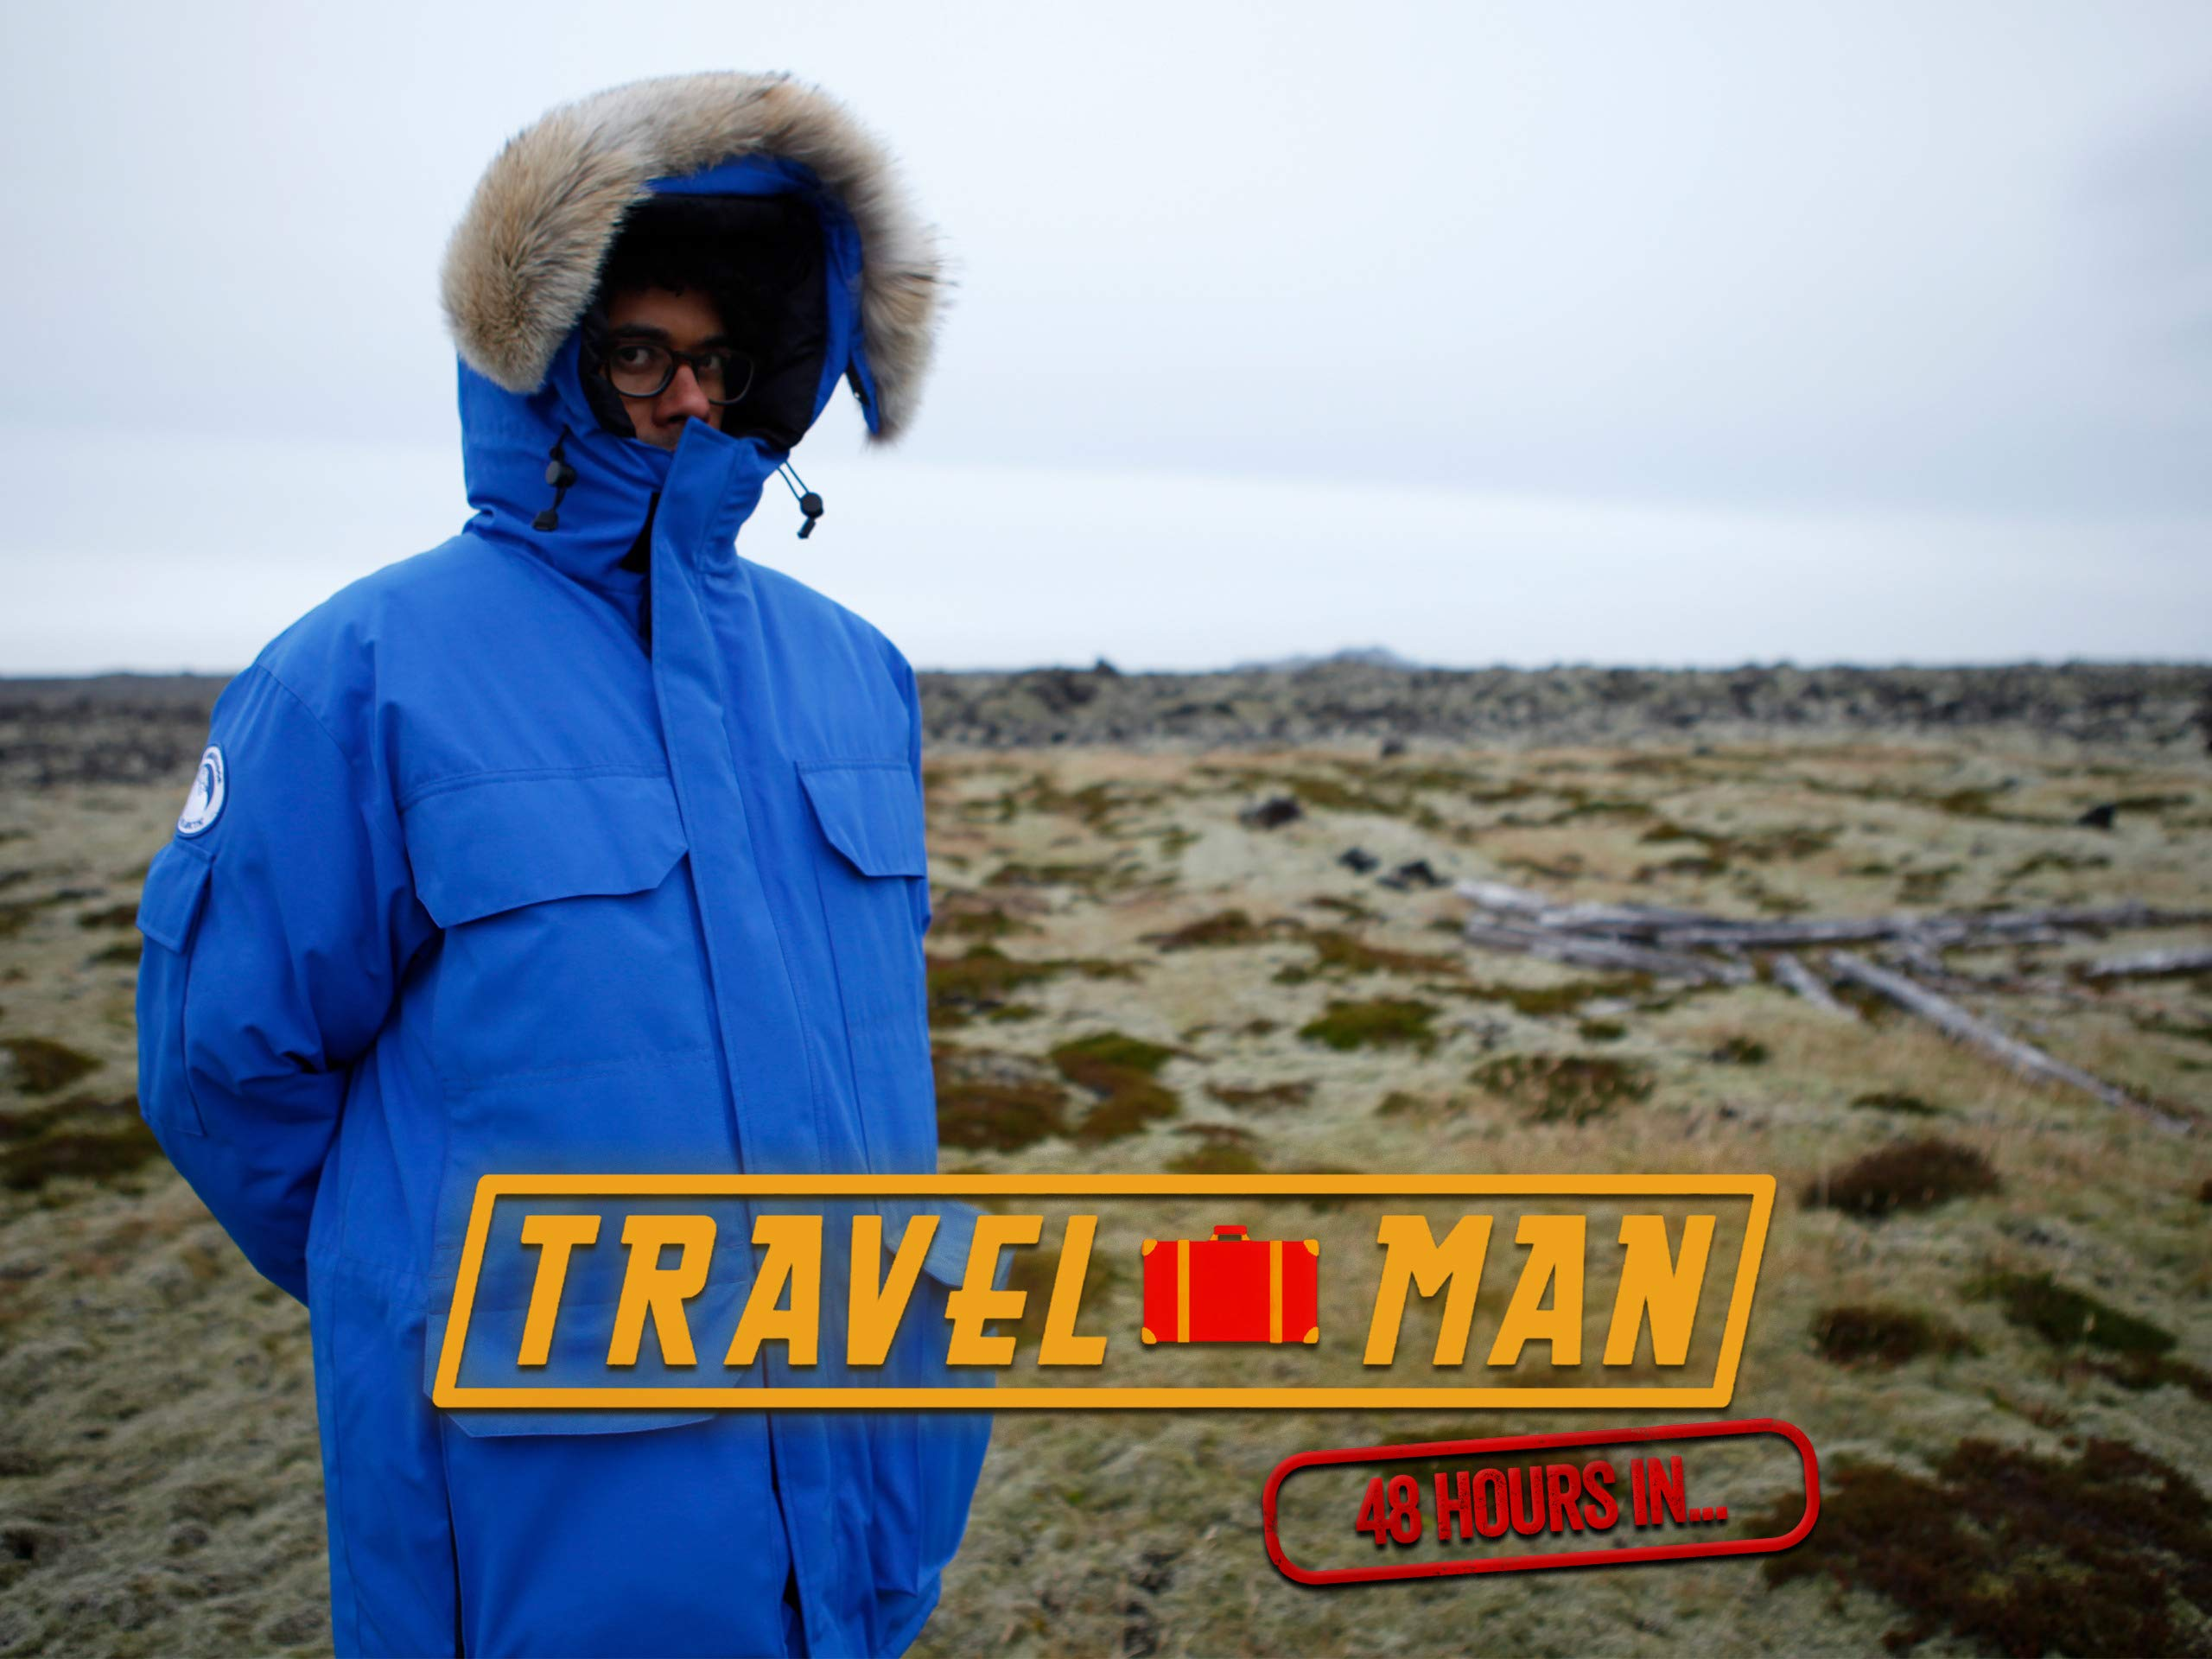 Travel Man: 48 Hours In on Amazon Prime Video UK